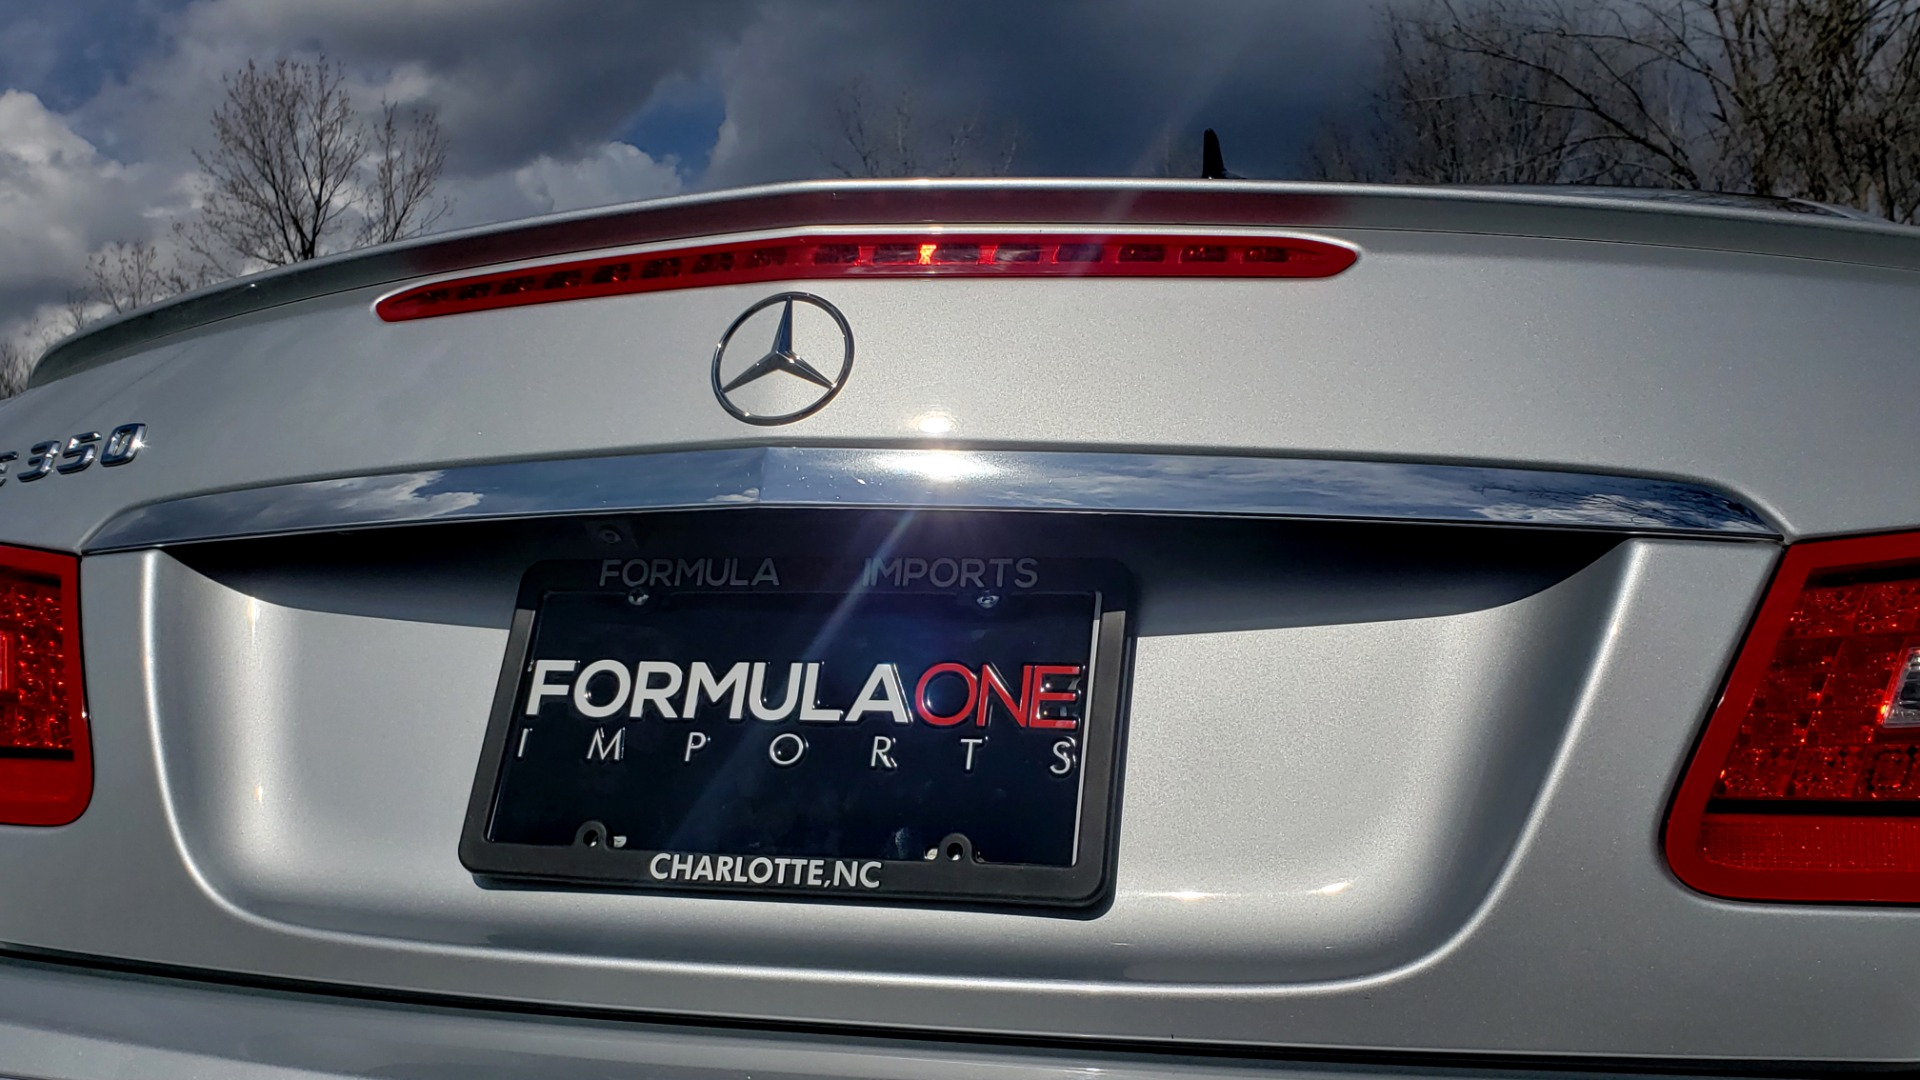 Used 2013 Mercedes-Benz E-CLASS E 350 COUPE PREM / NAV / PANO-ROFF / KEYLESS-GO / REARVIEW for sale Sold at Formula Imports in Charlotte NC 28227 27